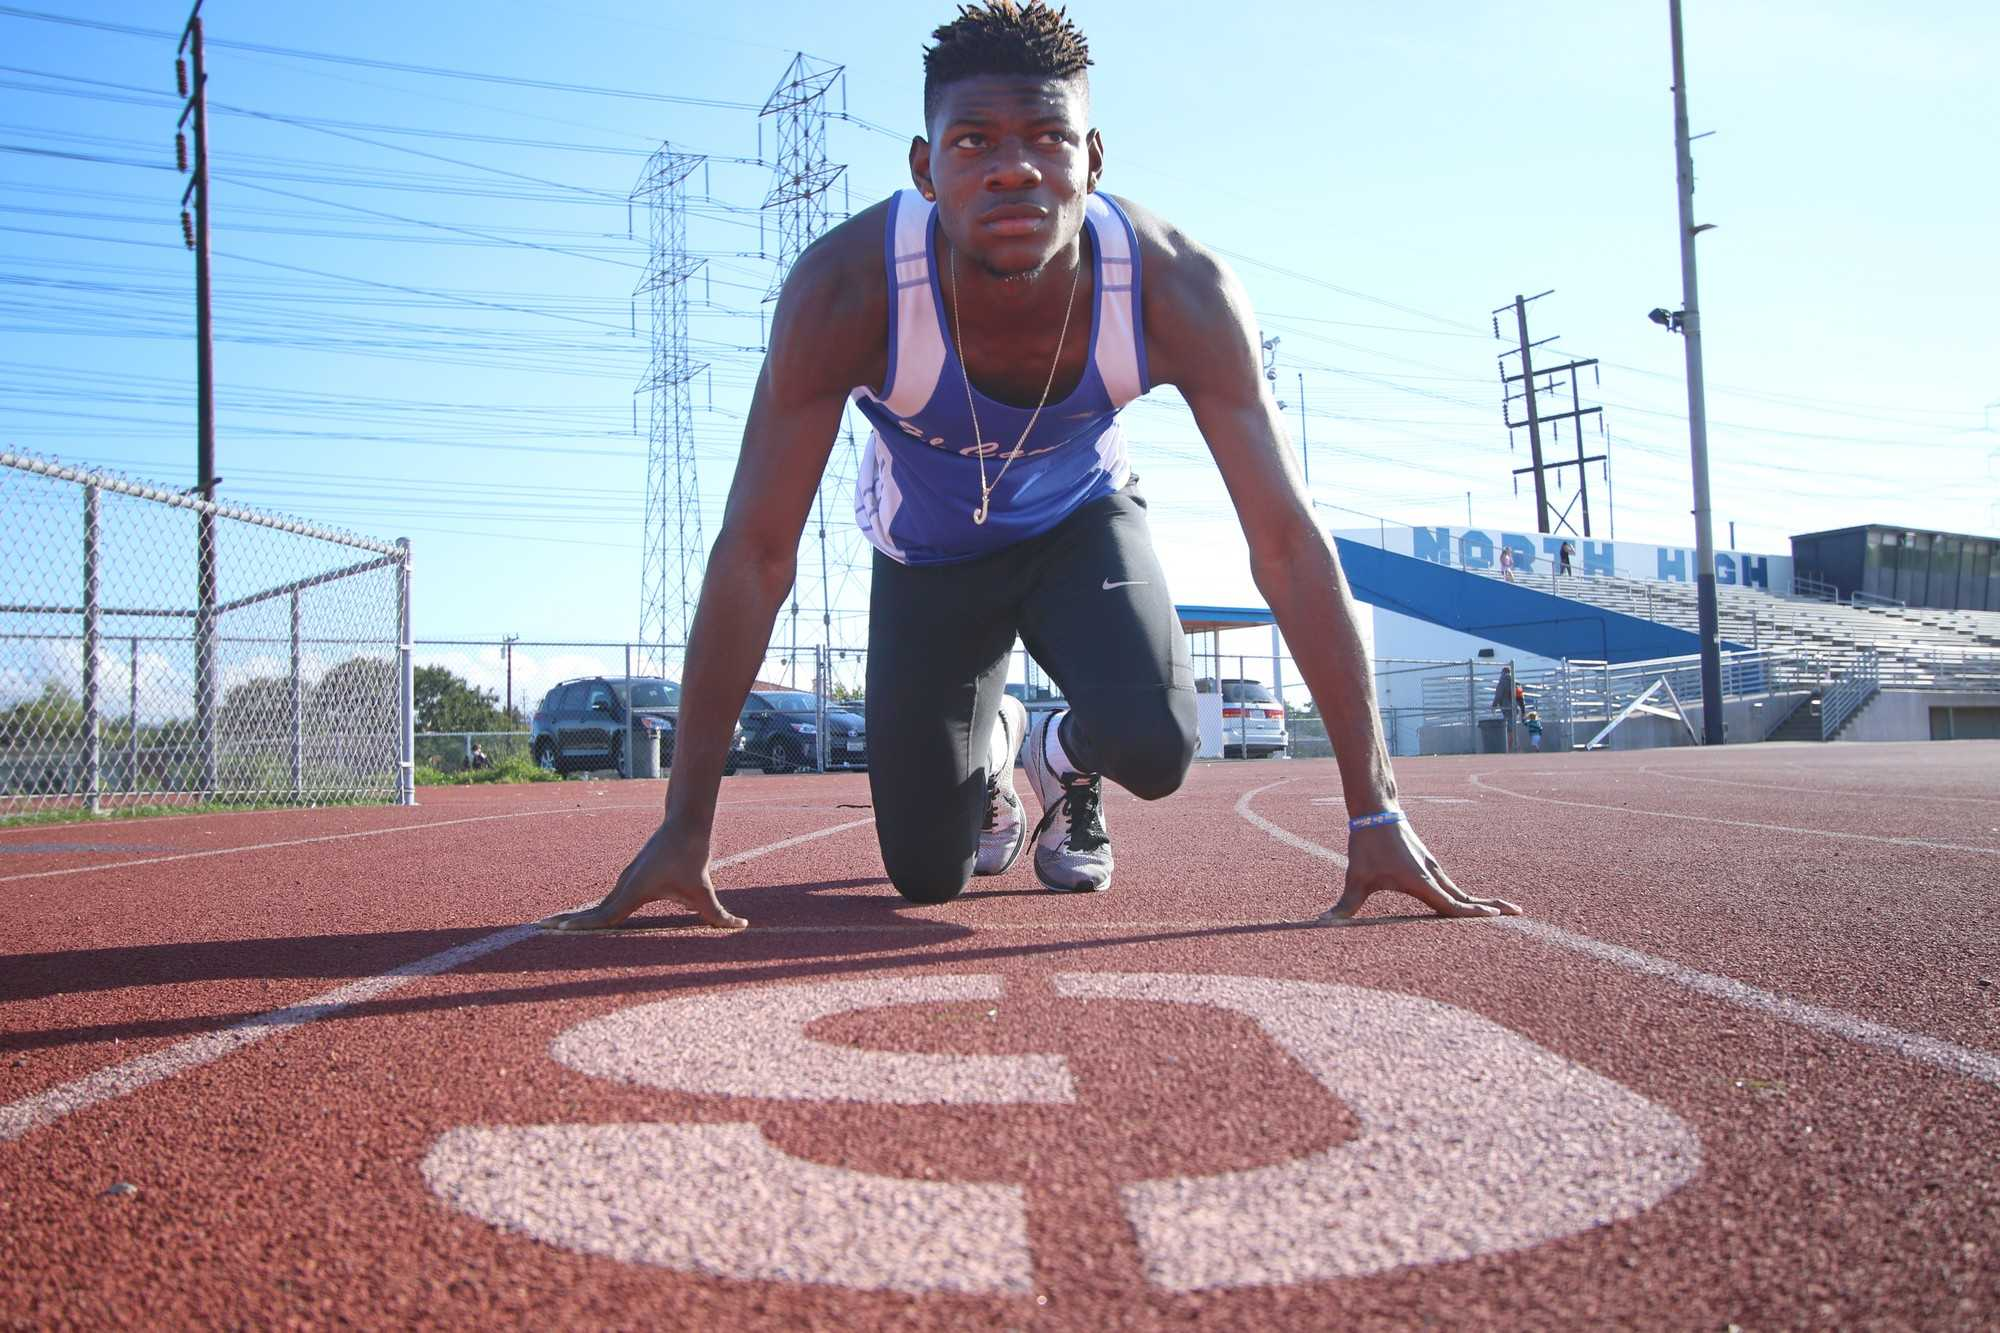 Freshman hurdler Justin Alexander looks up as if he is about to take off at North High School Friday, April 22. Alexander is number one in state for the 400-meter hurdles for junior colleges and is number six in the under 20 in the U.S. Photo credit: Jo Rankin